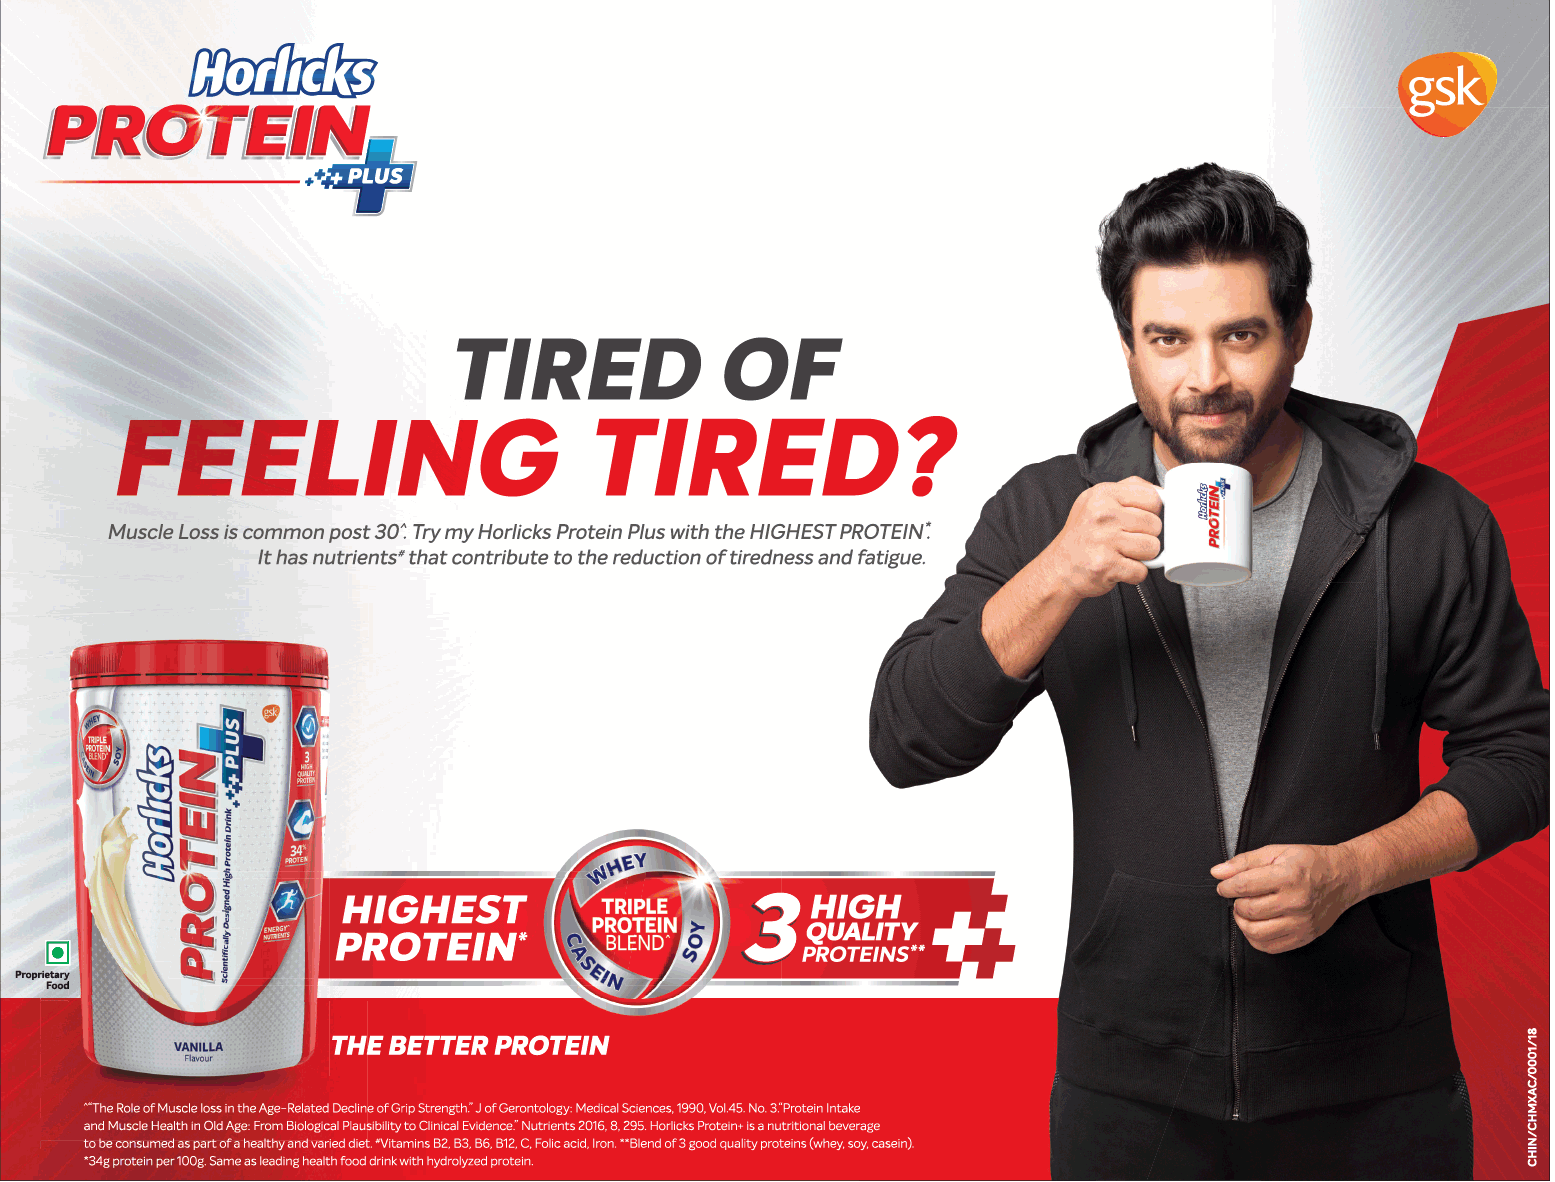 horlicks-protein-plus-highest-protein-ad-times-of-india-mumbai-29-12-2018.png